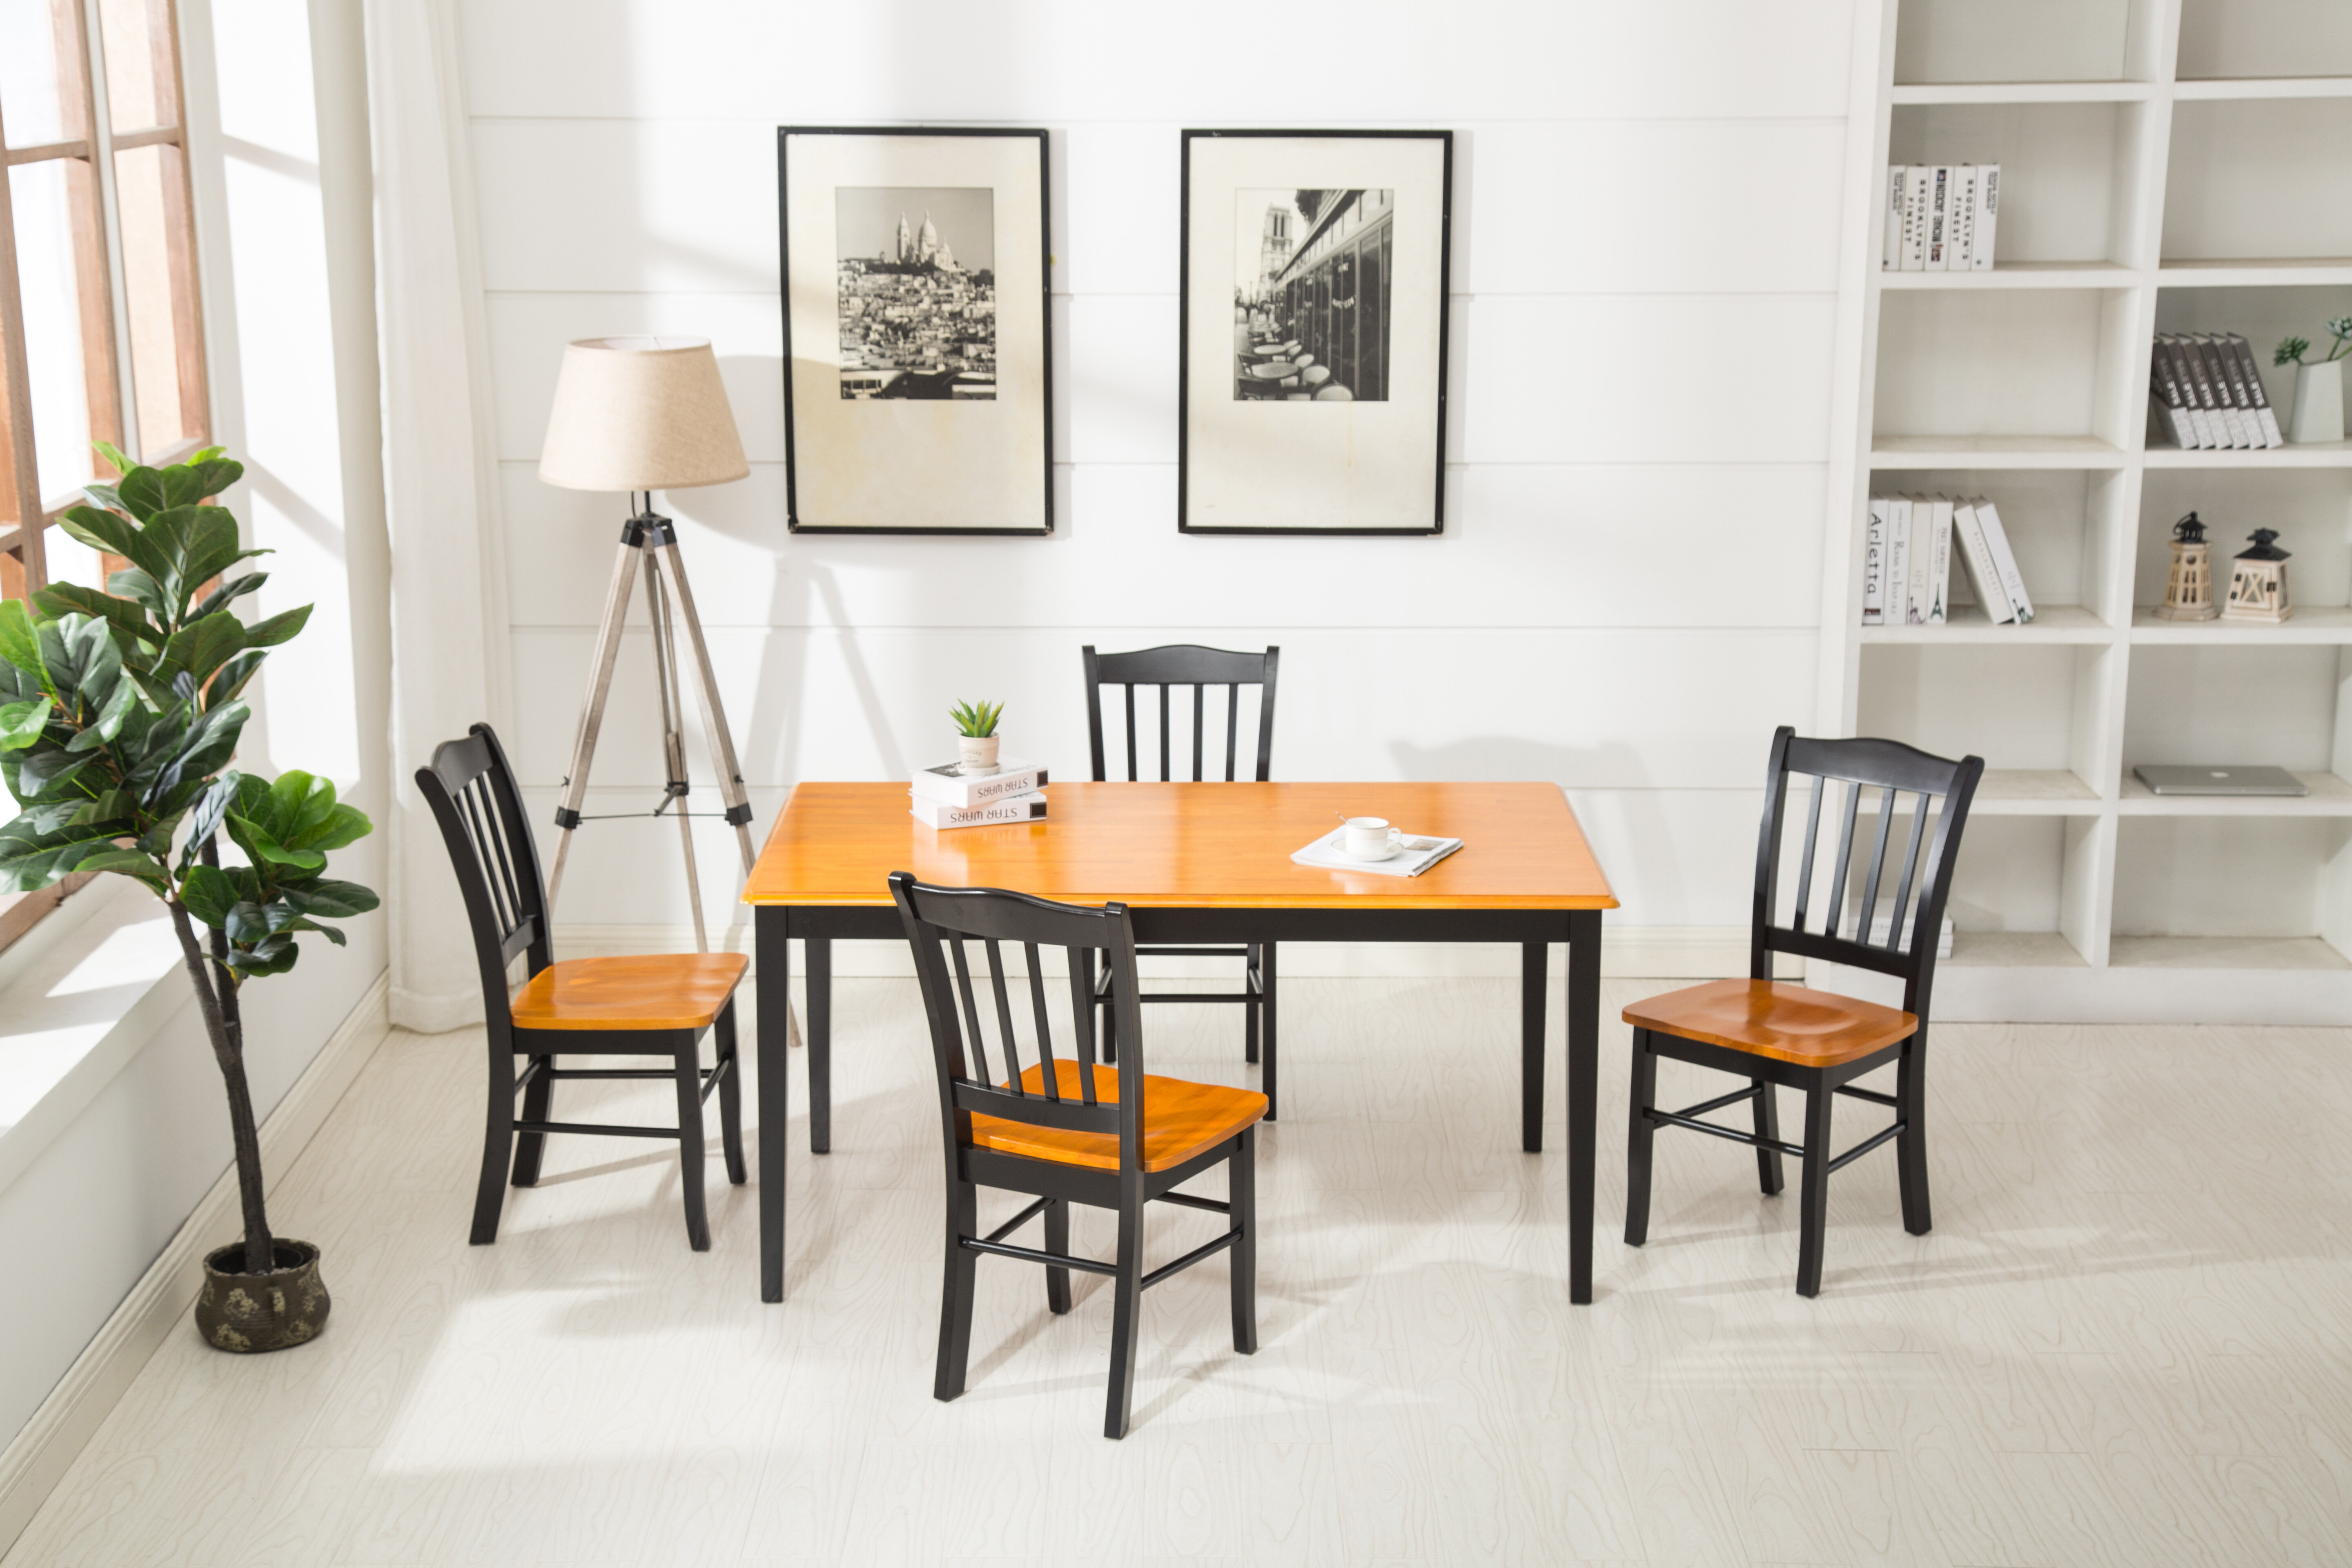 Weldy 5 Piece Dining Set Pertaining To Latest Linette 5 Piece Dining Table Sets (View 10 of 20)